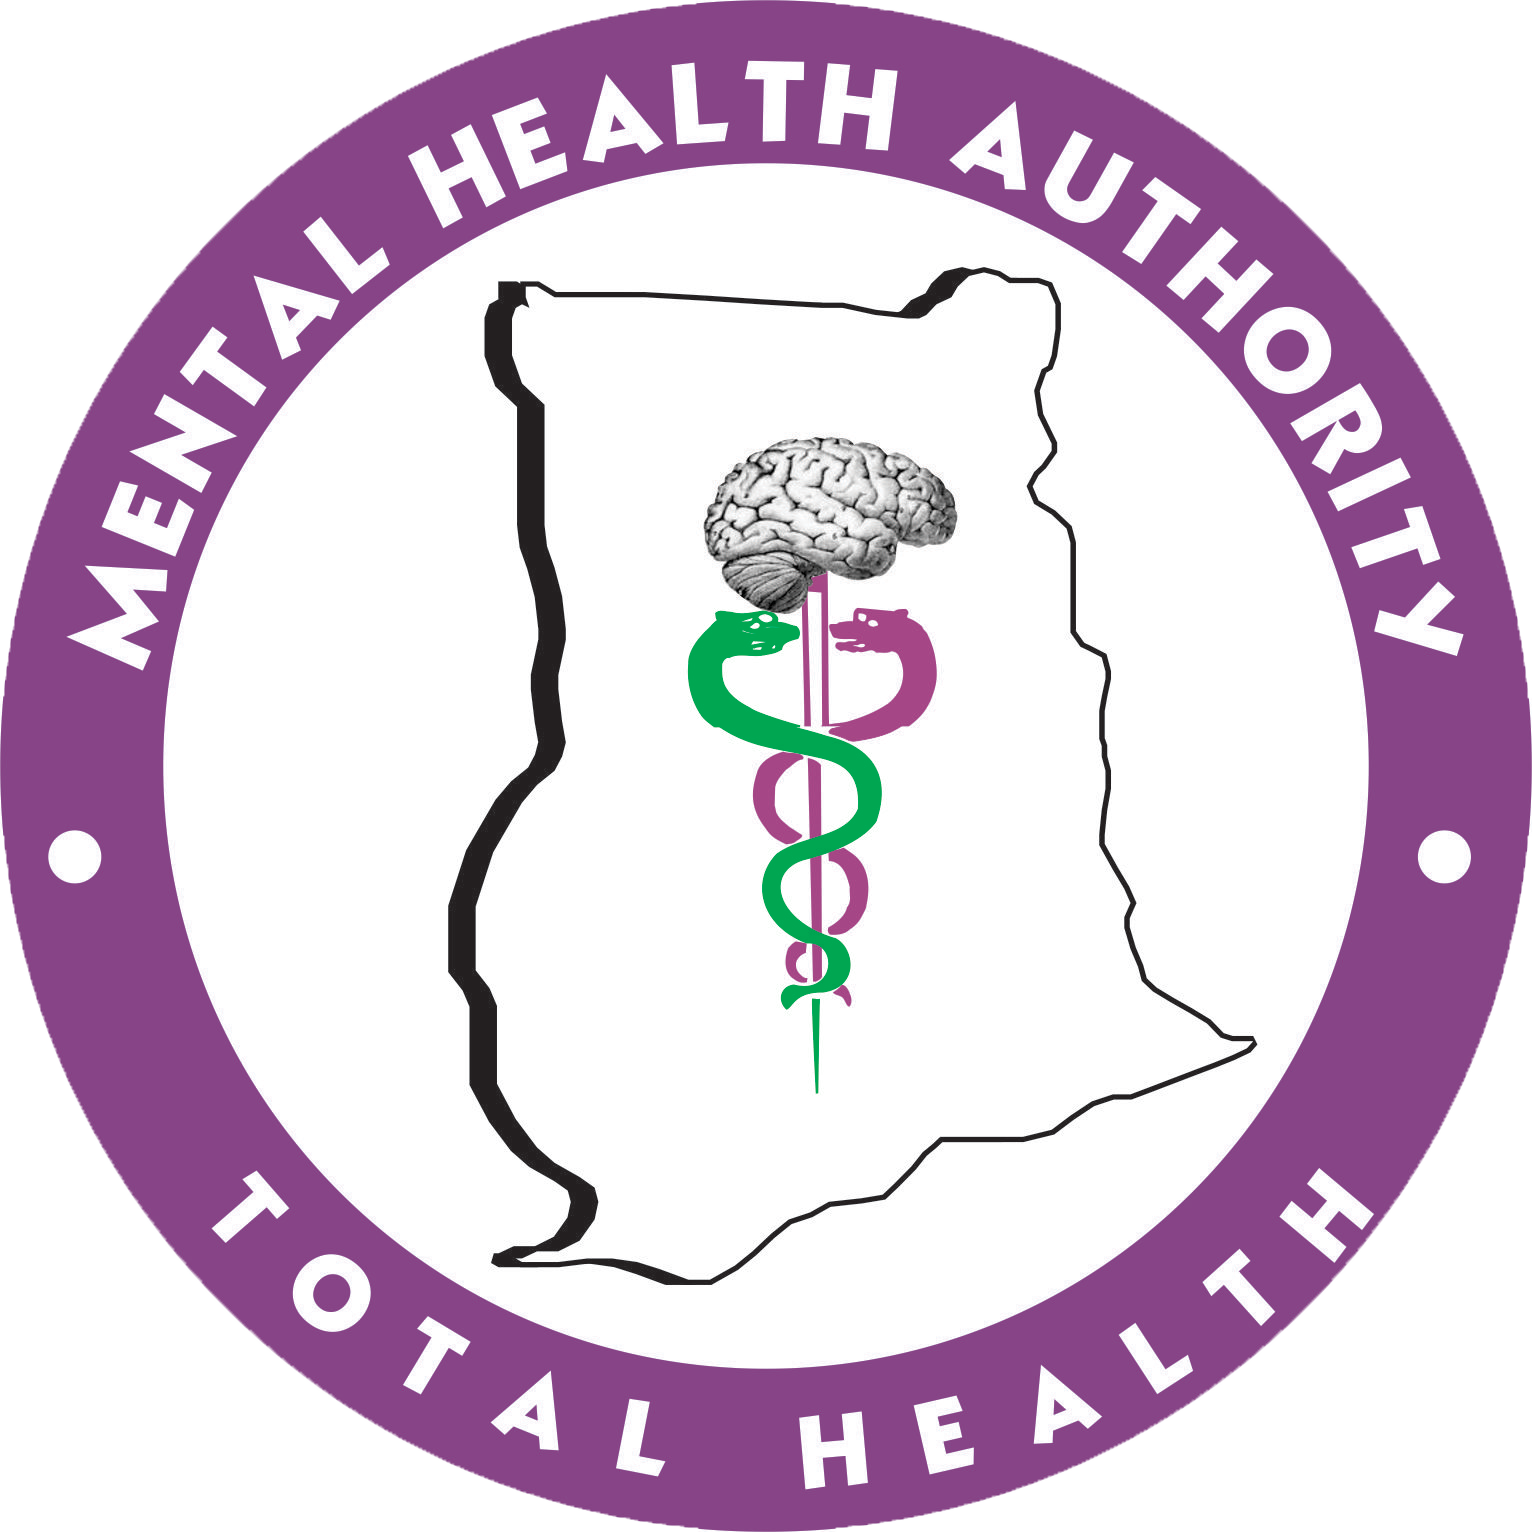 Ghana health service logo clipart clipart transparent library what causes diarrhea after eating Archives - Ghana Health News clipart transparent library